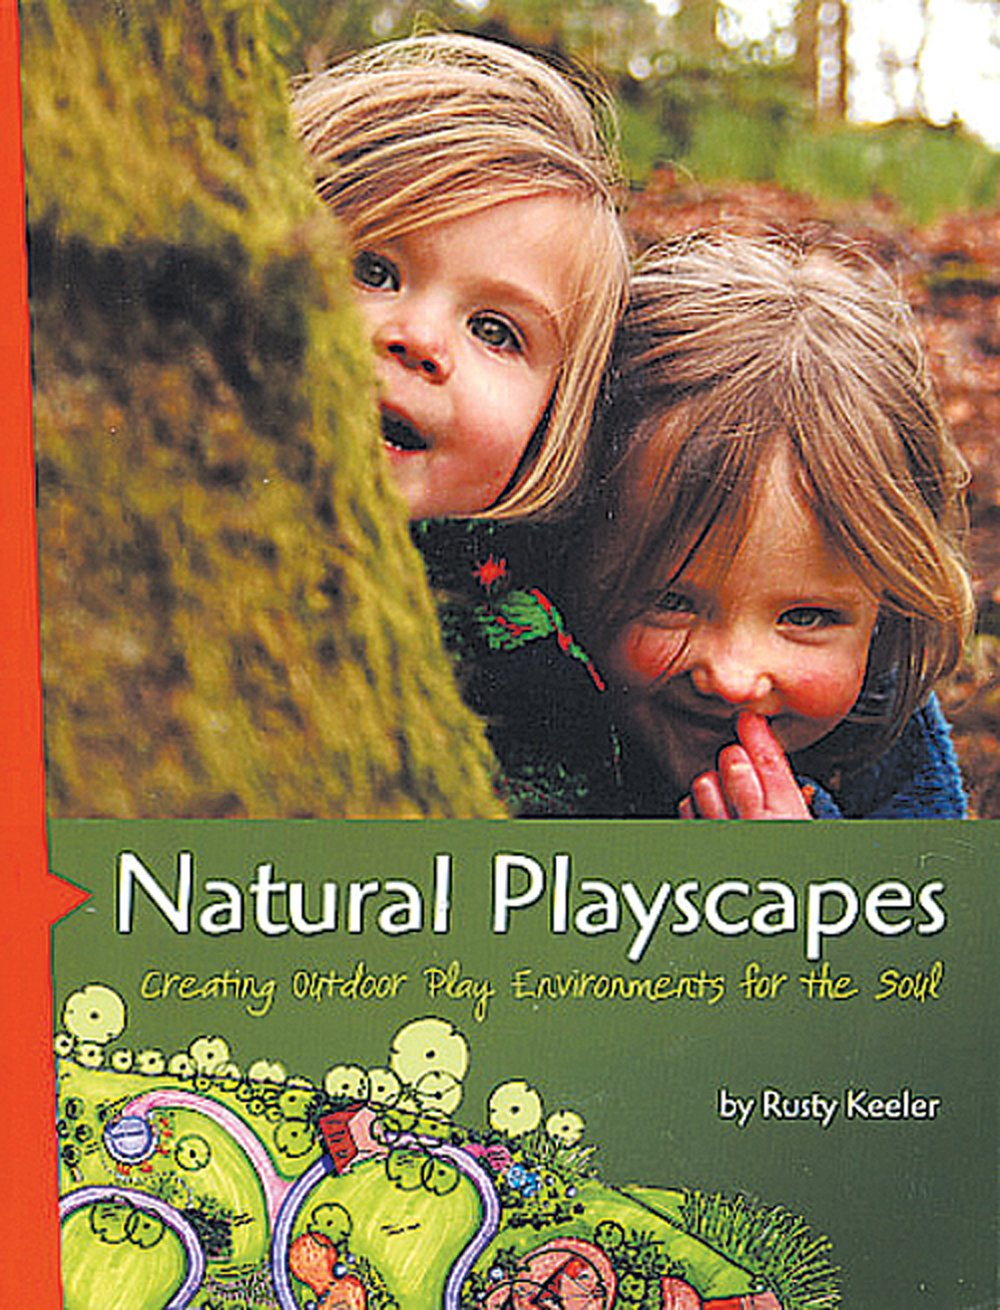 Natural Playscapes: Creating Outdoor Play Environments for the Soul